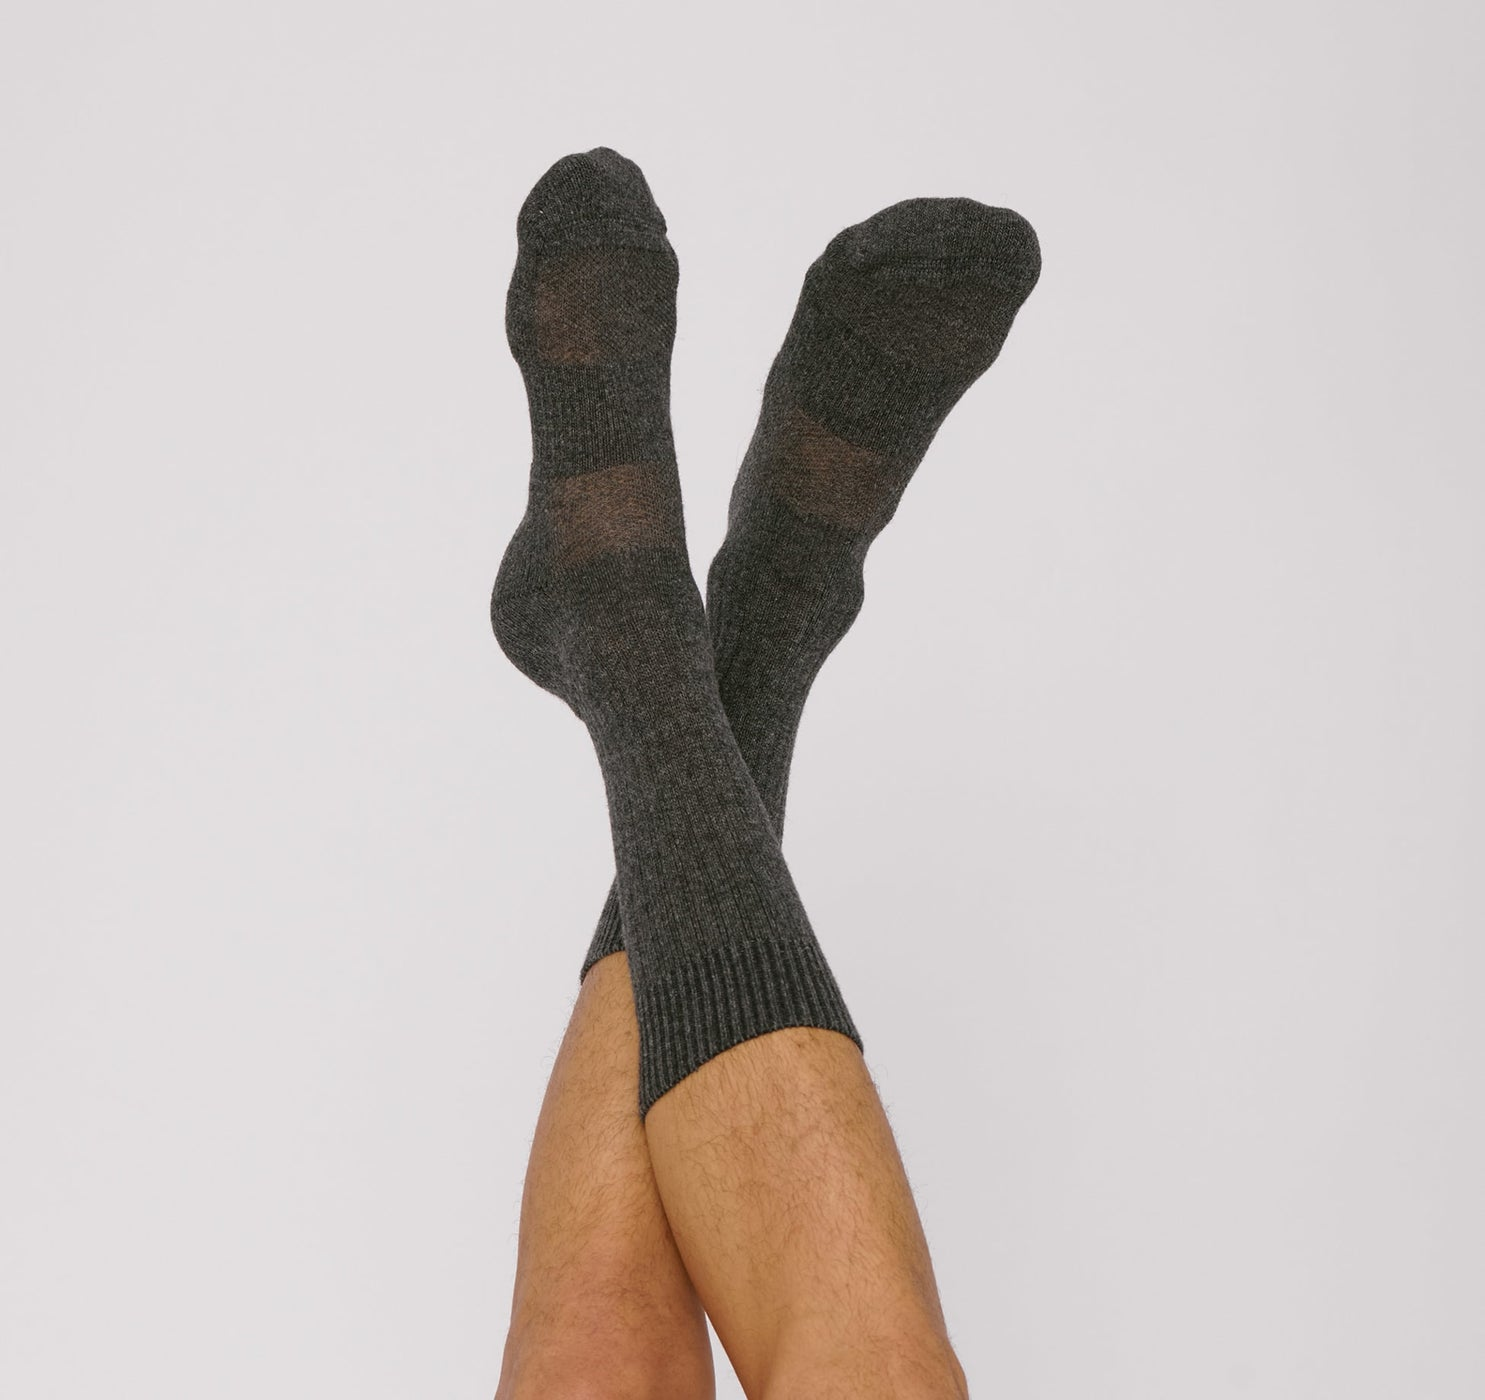 SilverTech™ Active Socks 5-pack